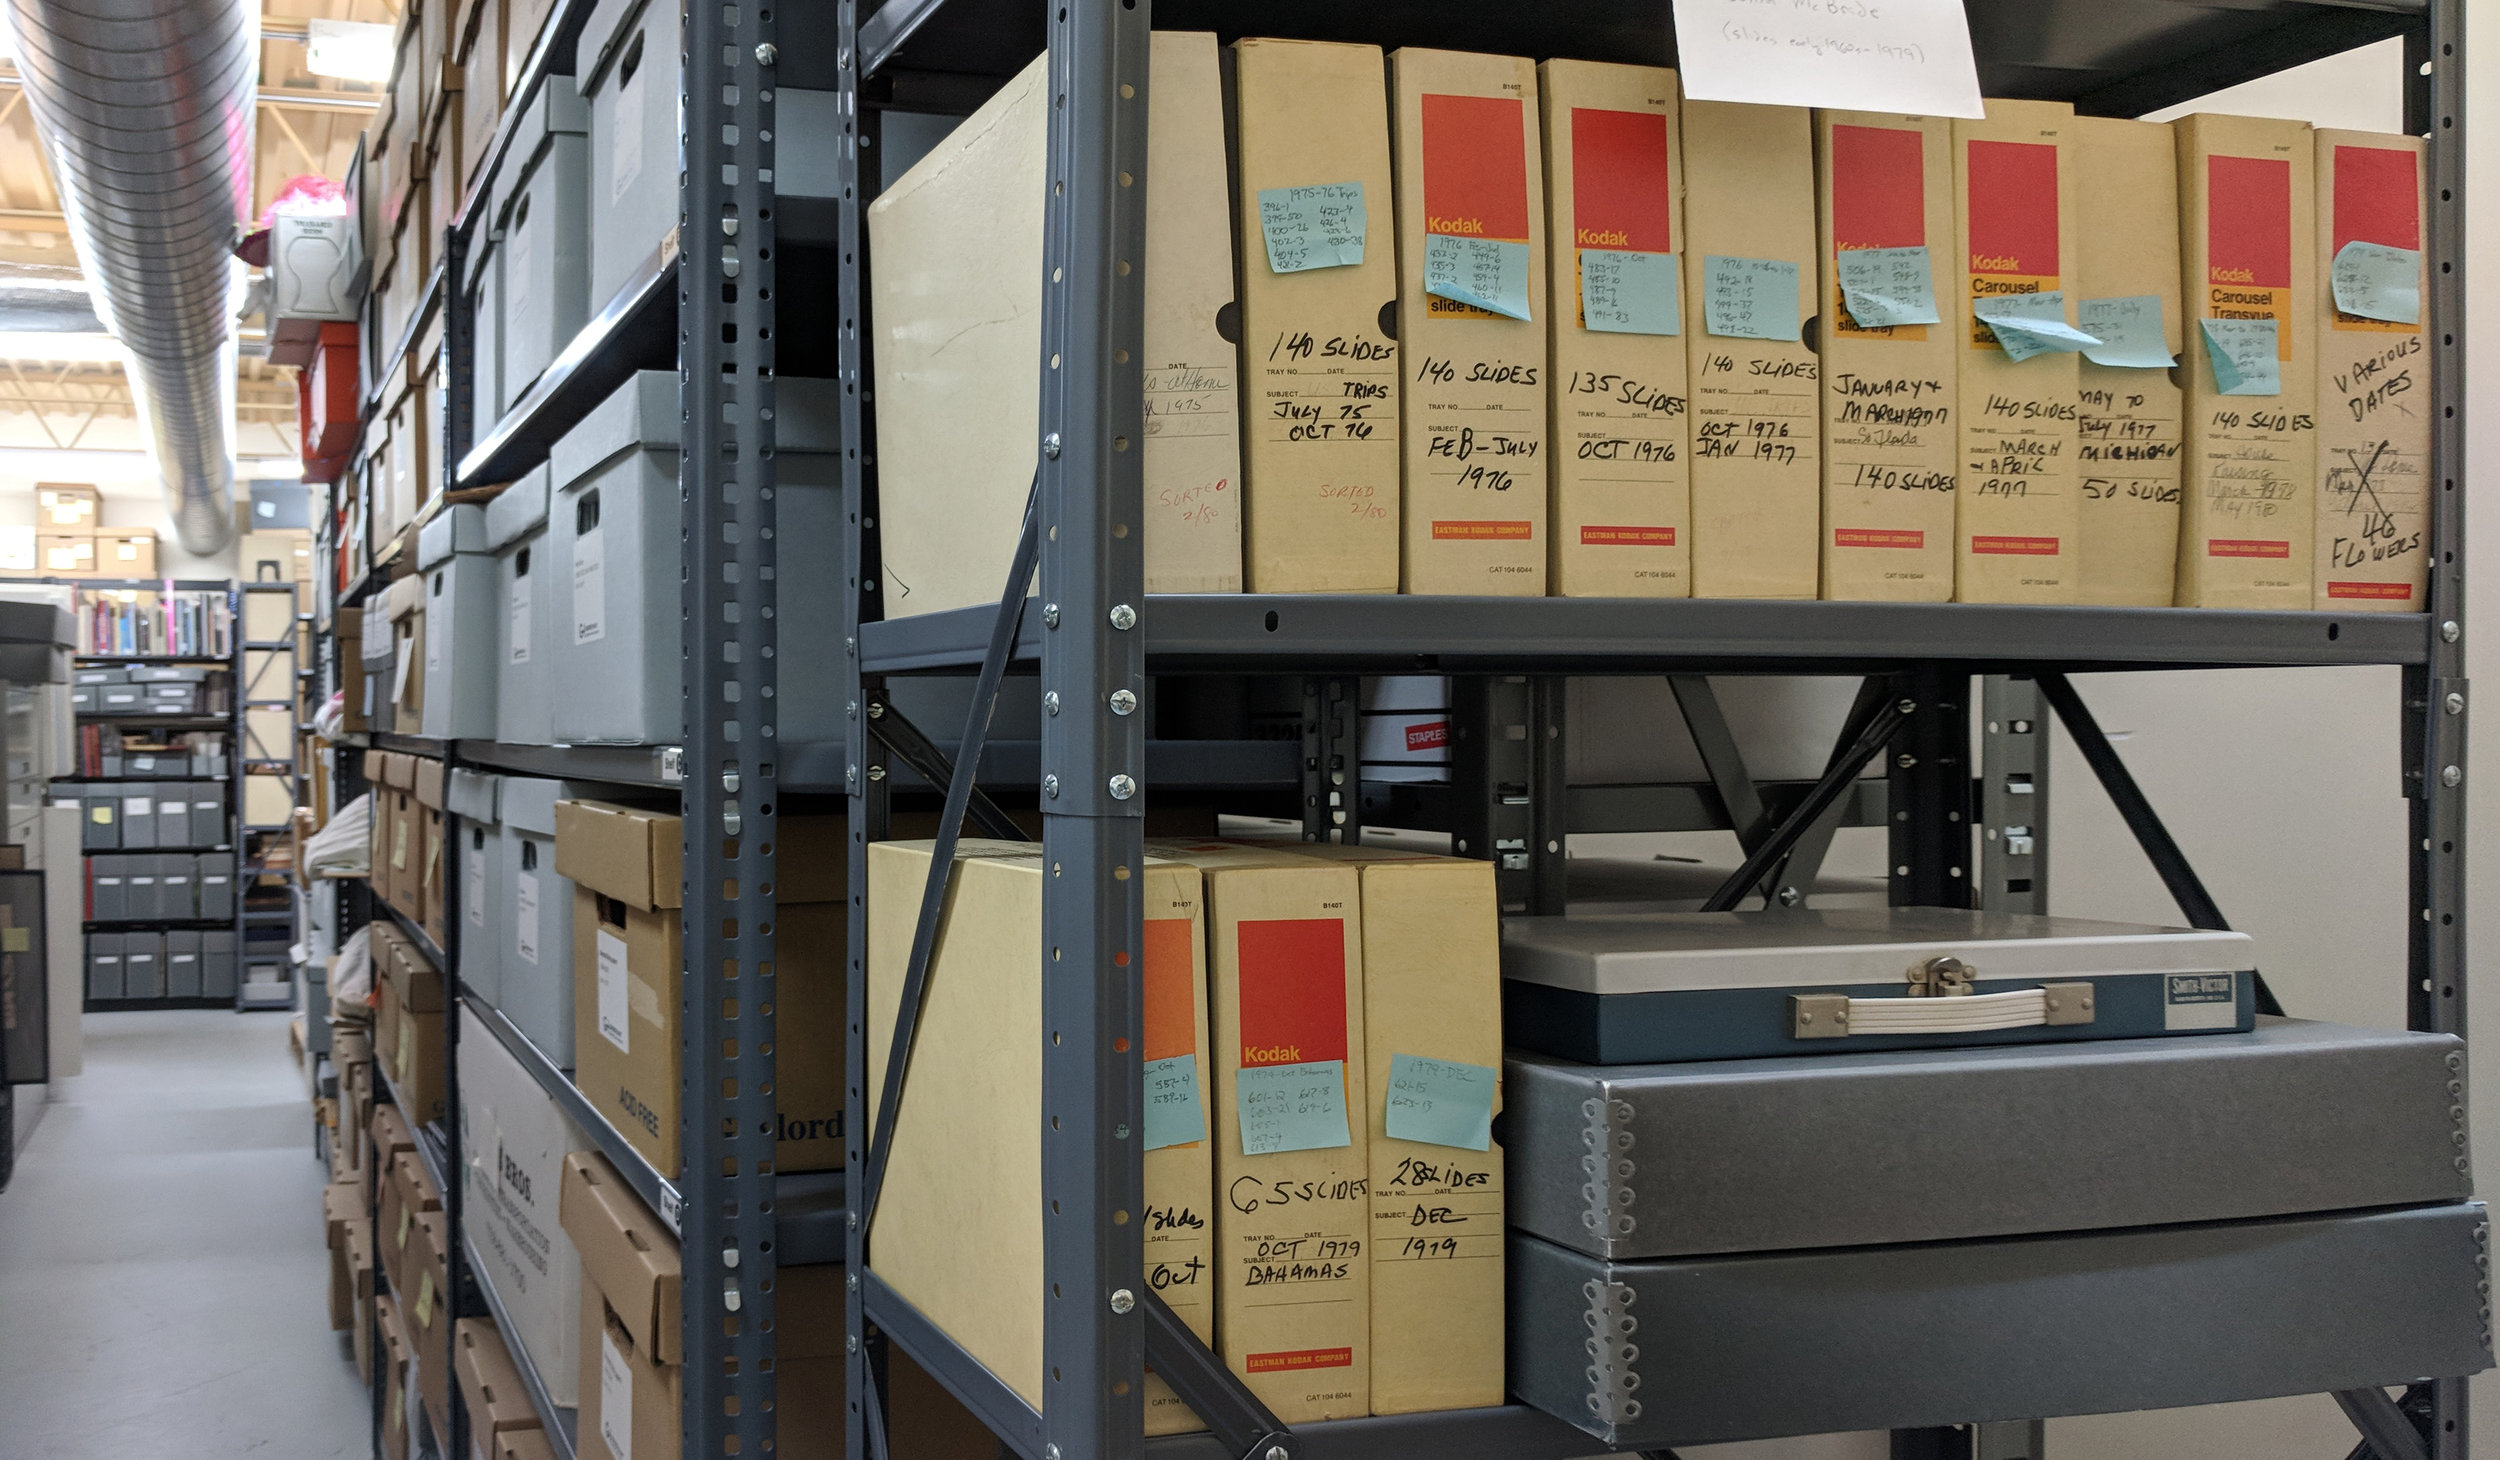 Some of the less common visual resources in the archival collections